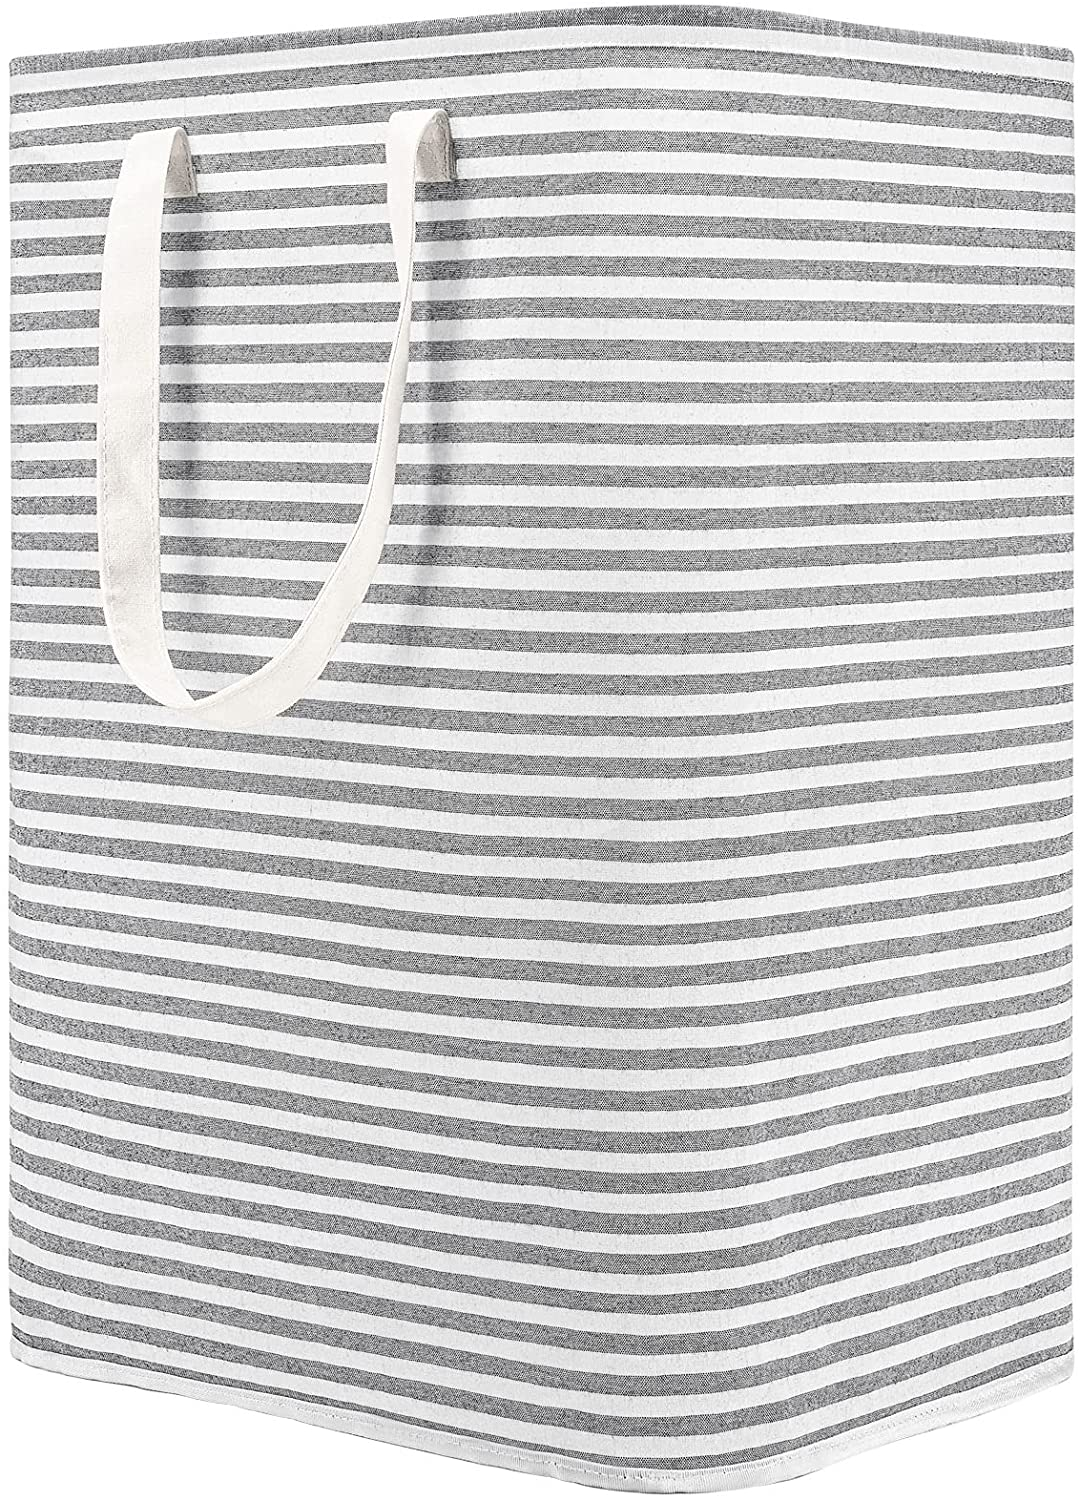 DOKEHOM 77L Freestanding Laundry Hamper with Handle, Collapsible Large Cotton Storage Basket for Clothes(Grey)